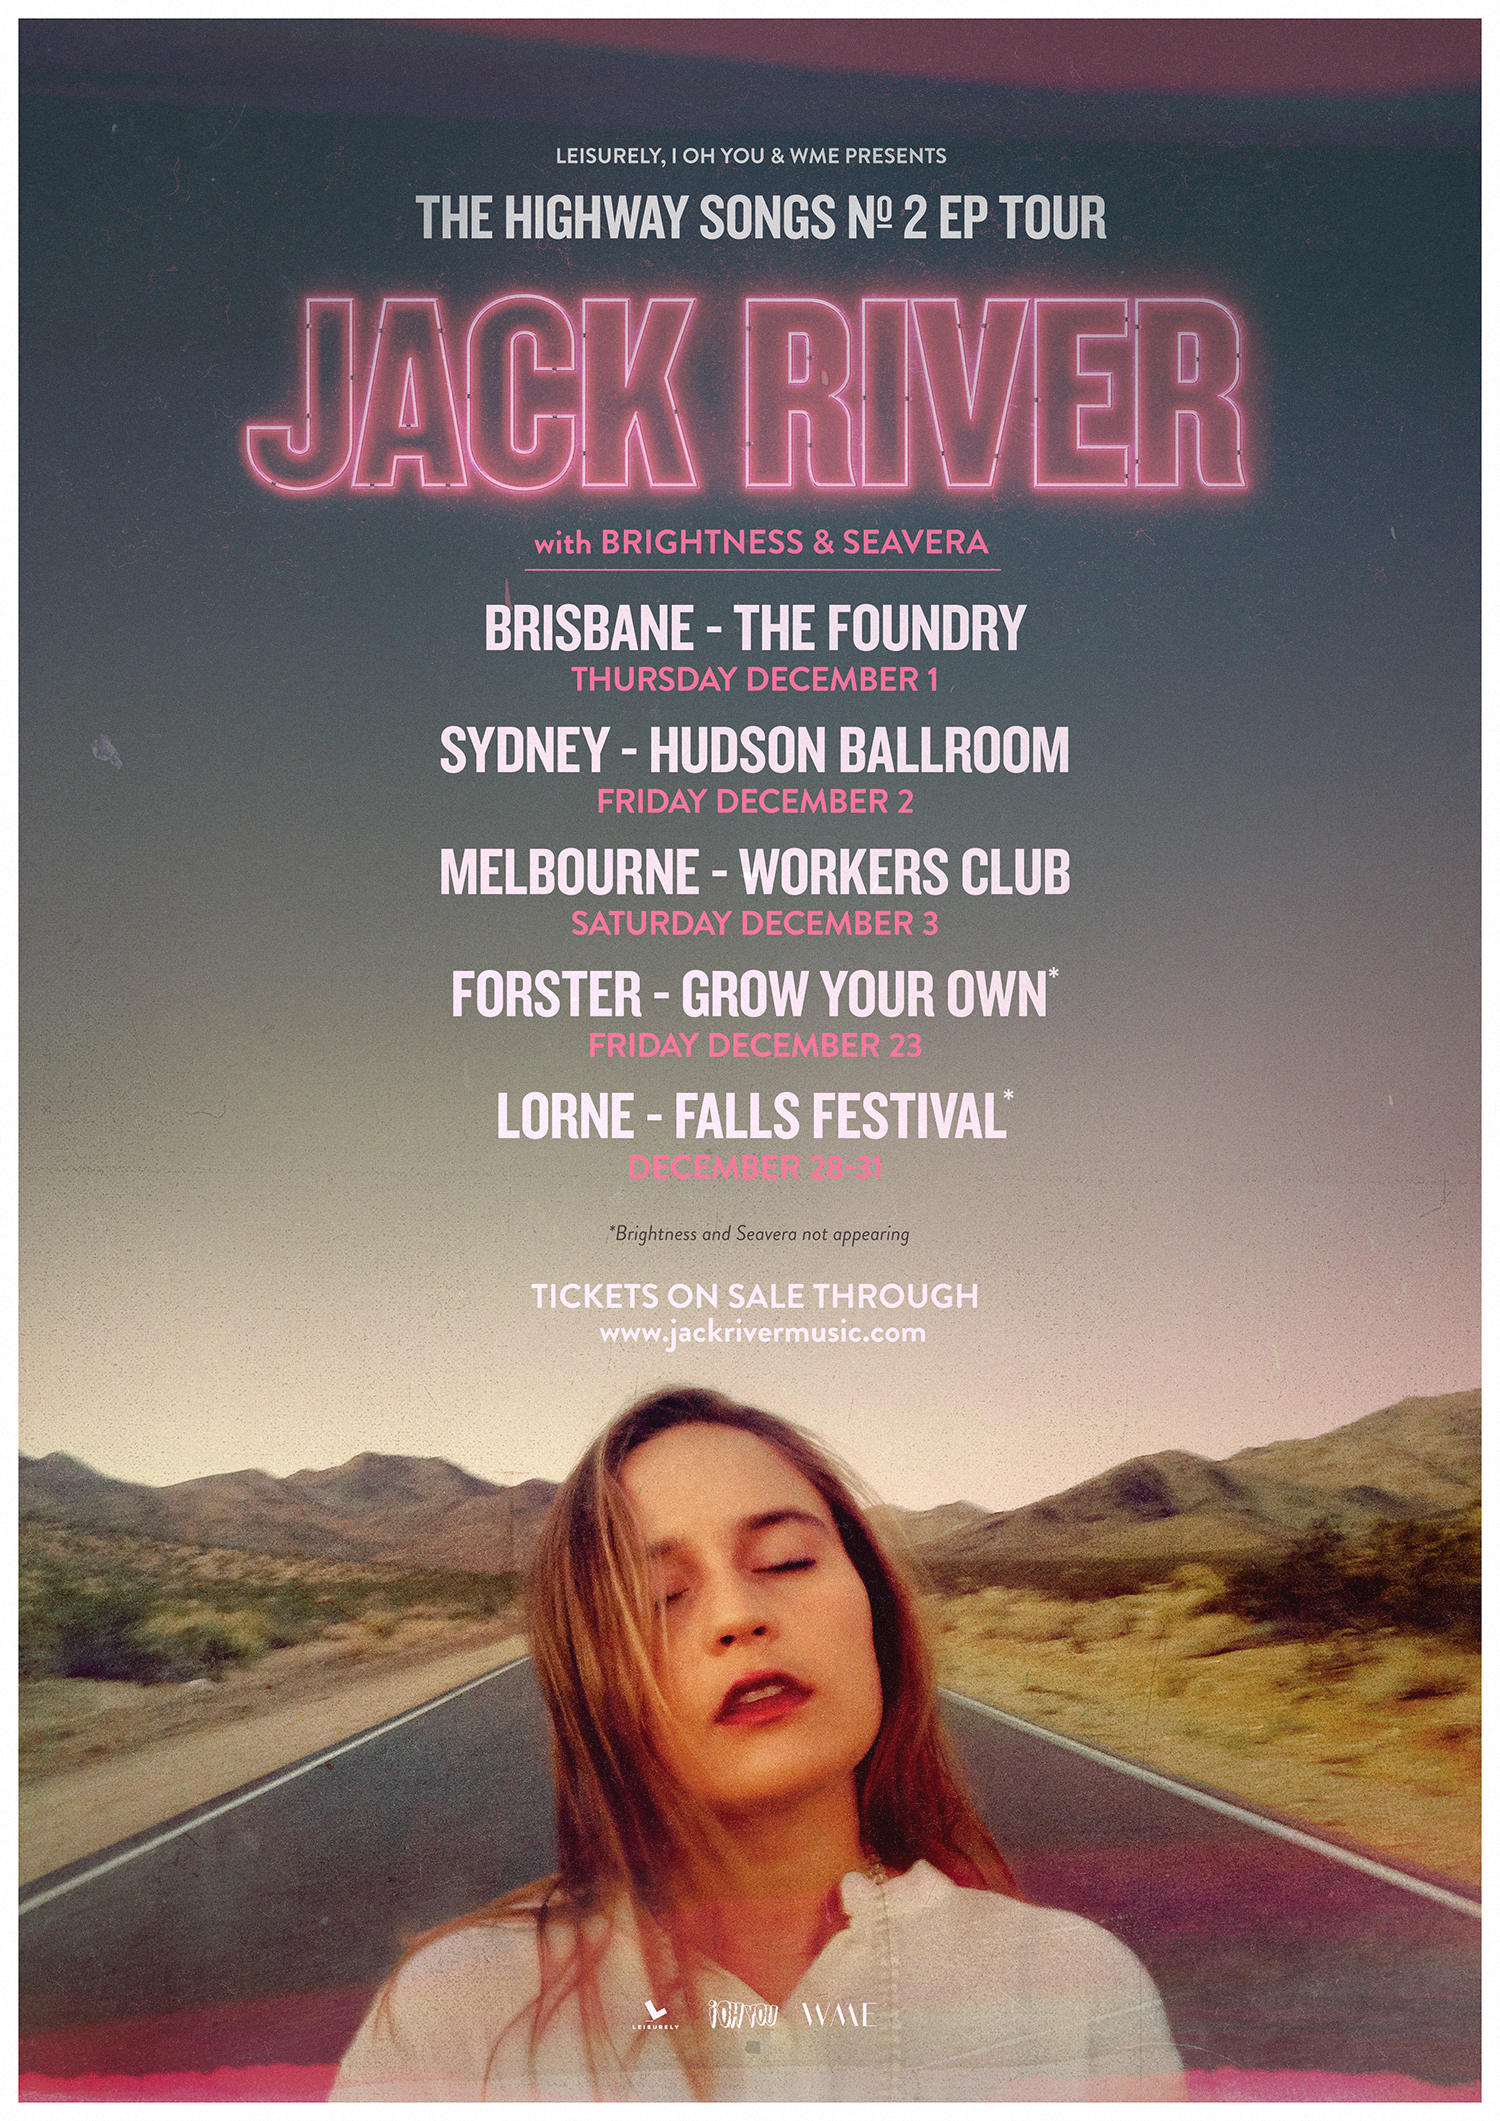 JACK_RIVER_TOUR_ART.jpg